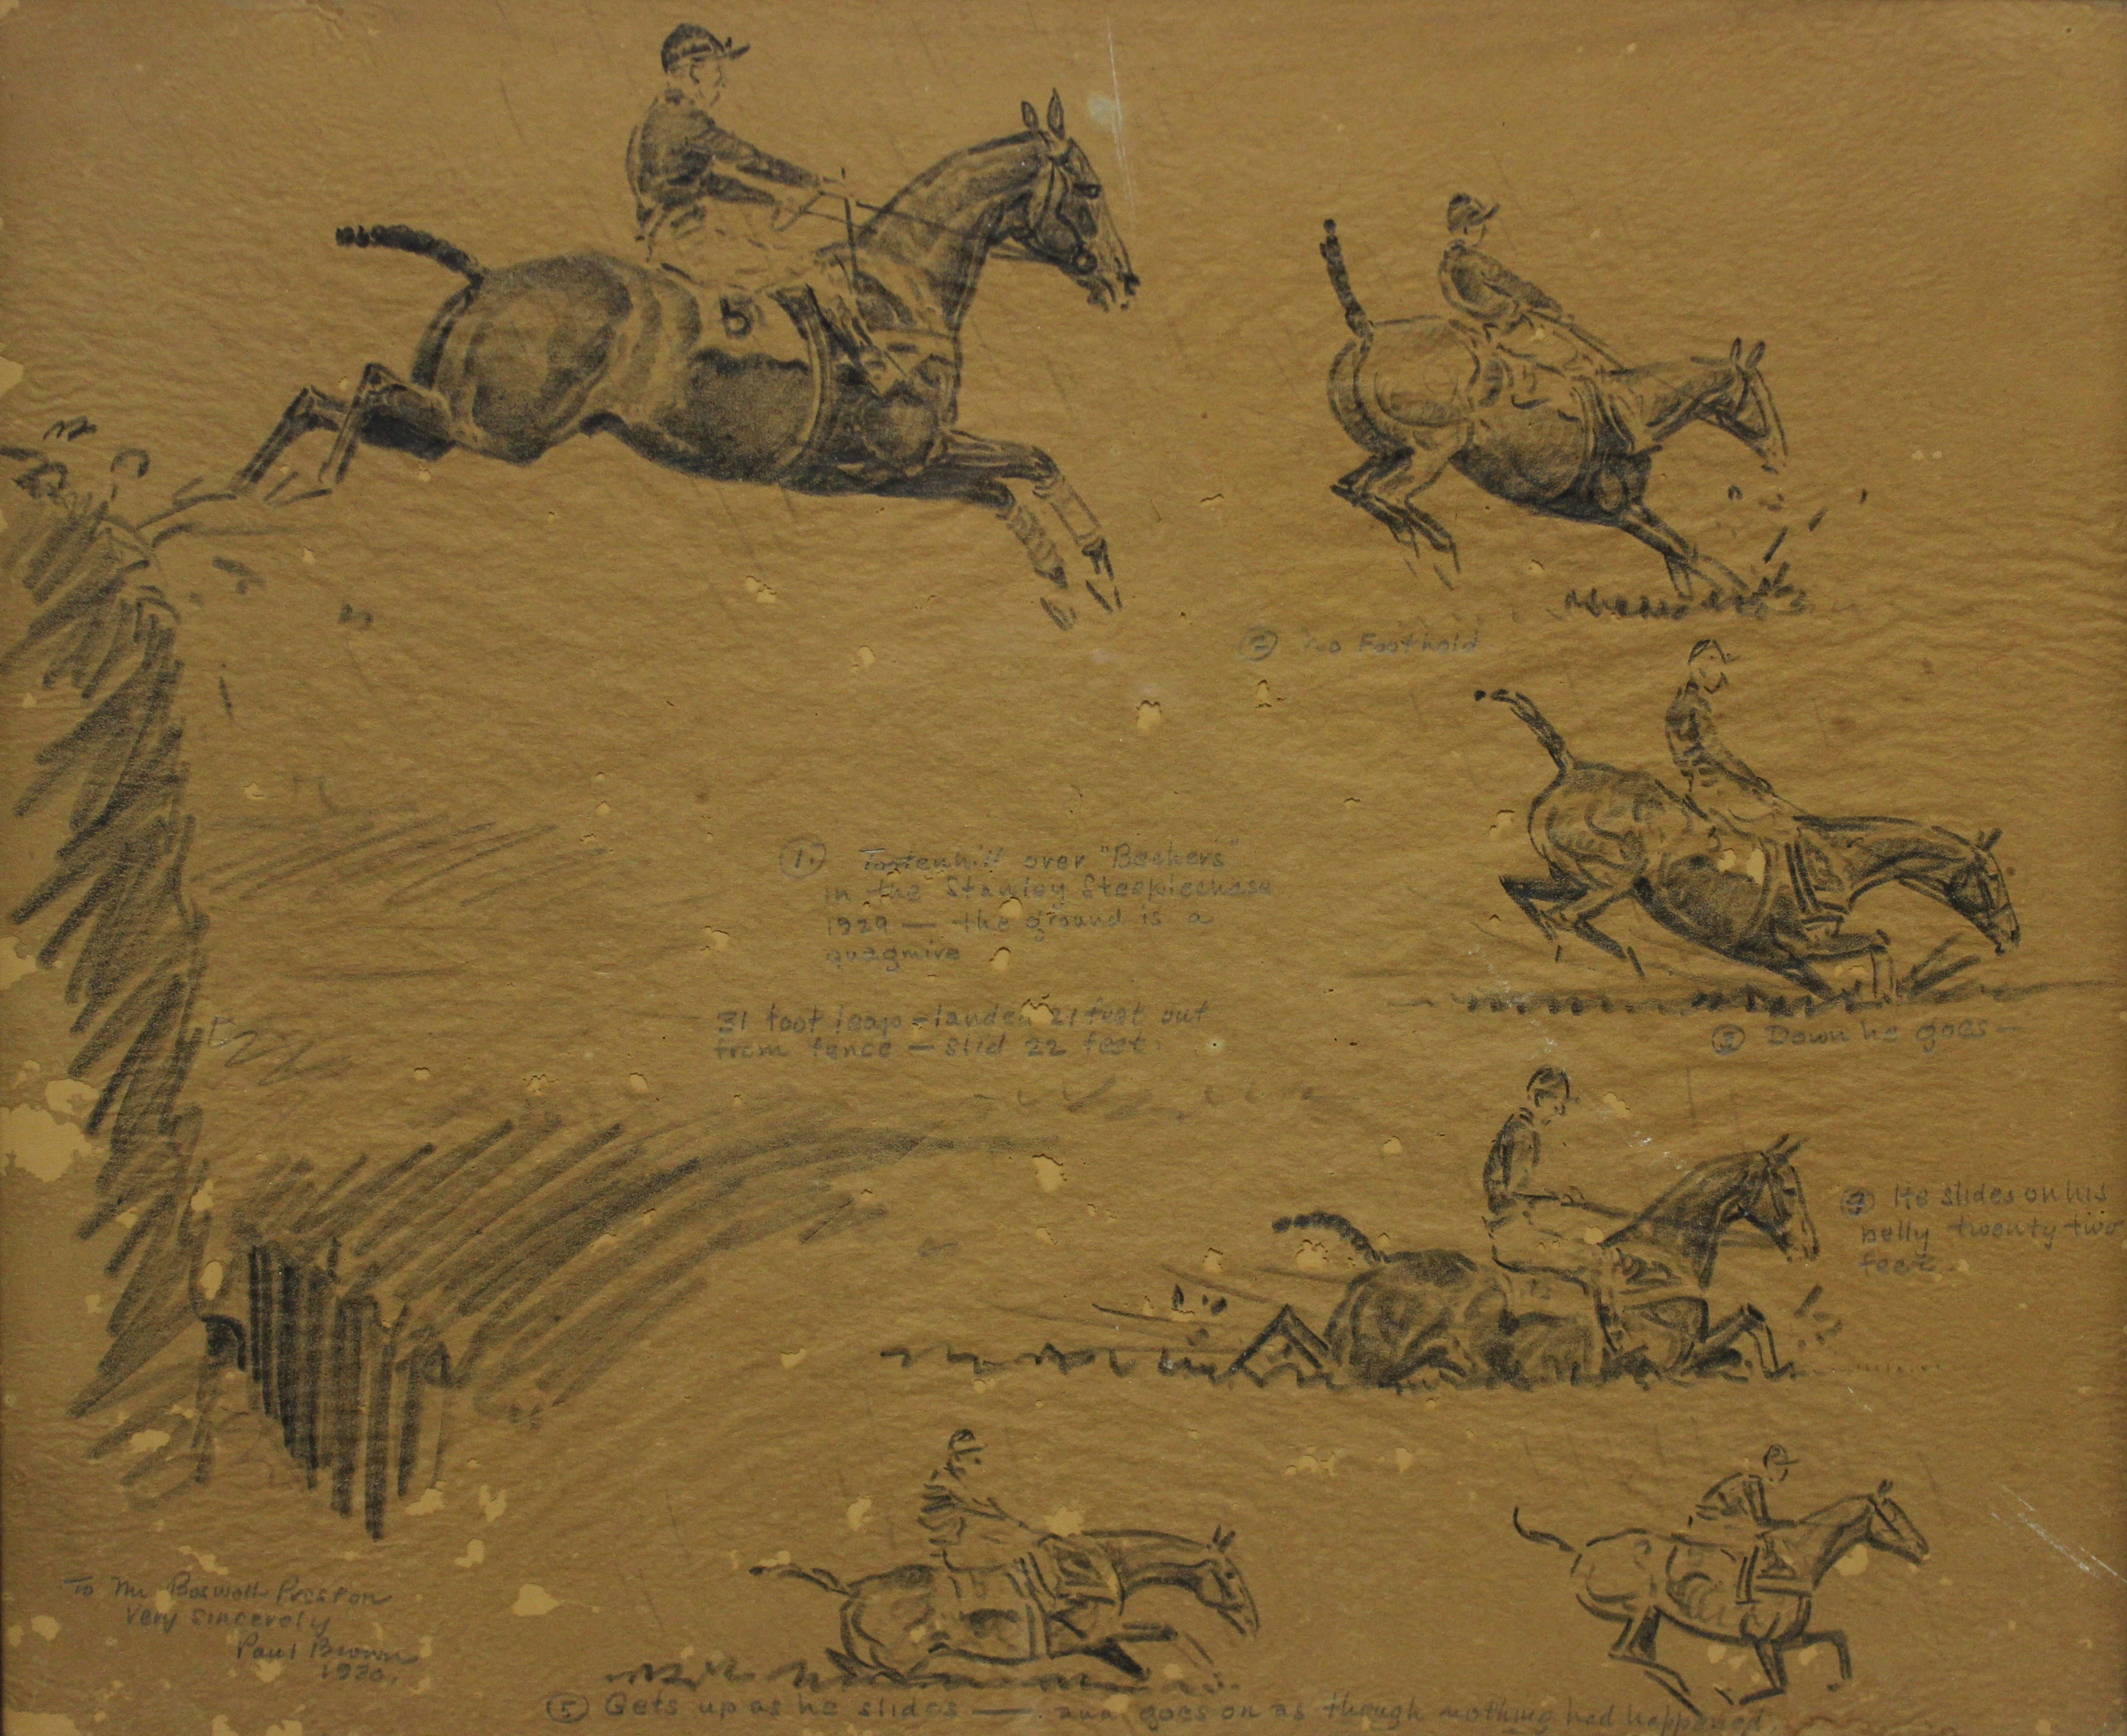 1929 Stanley Steeplechase by Paul Brown